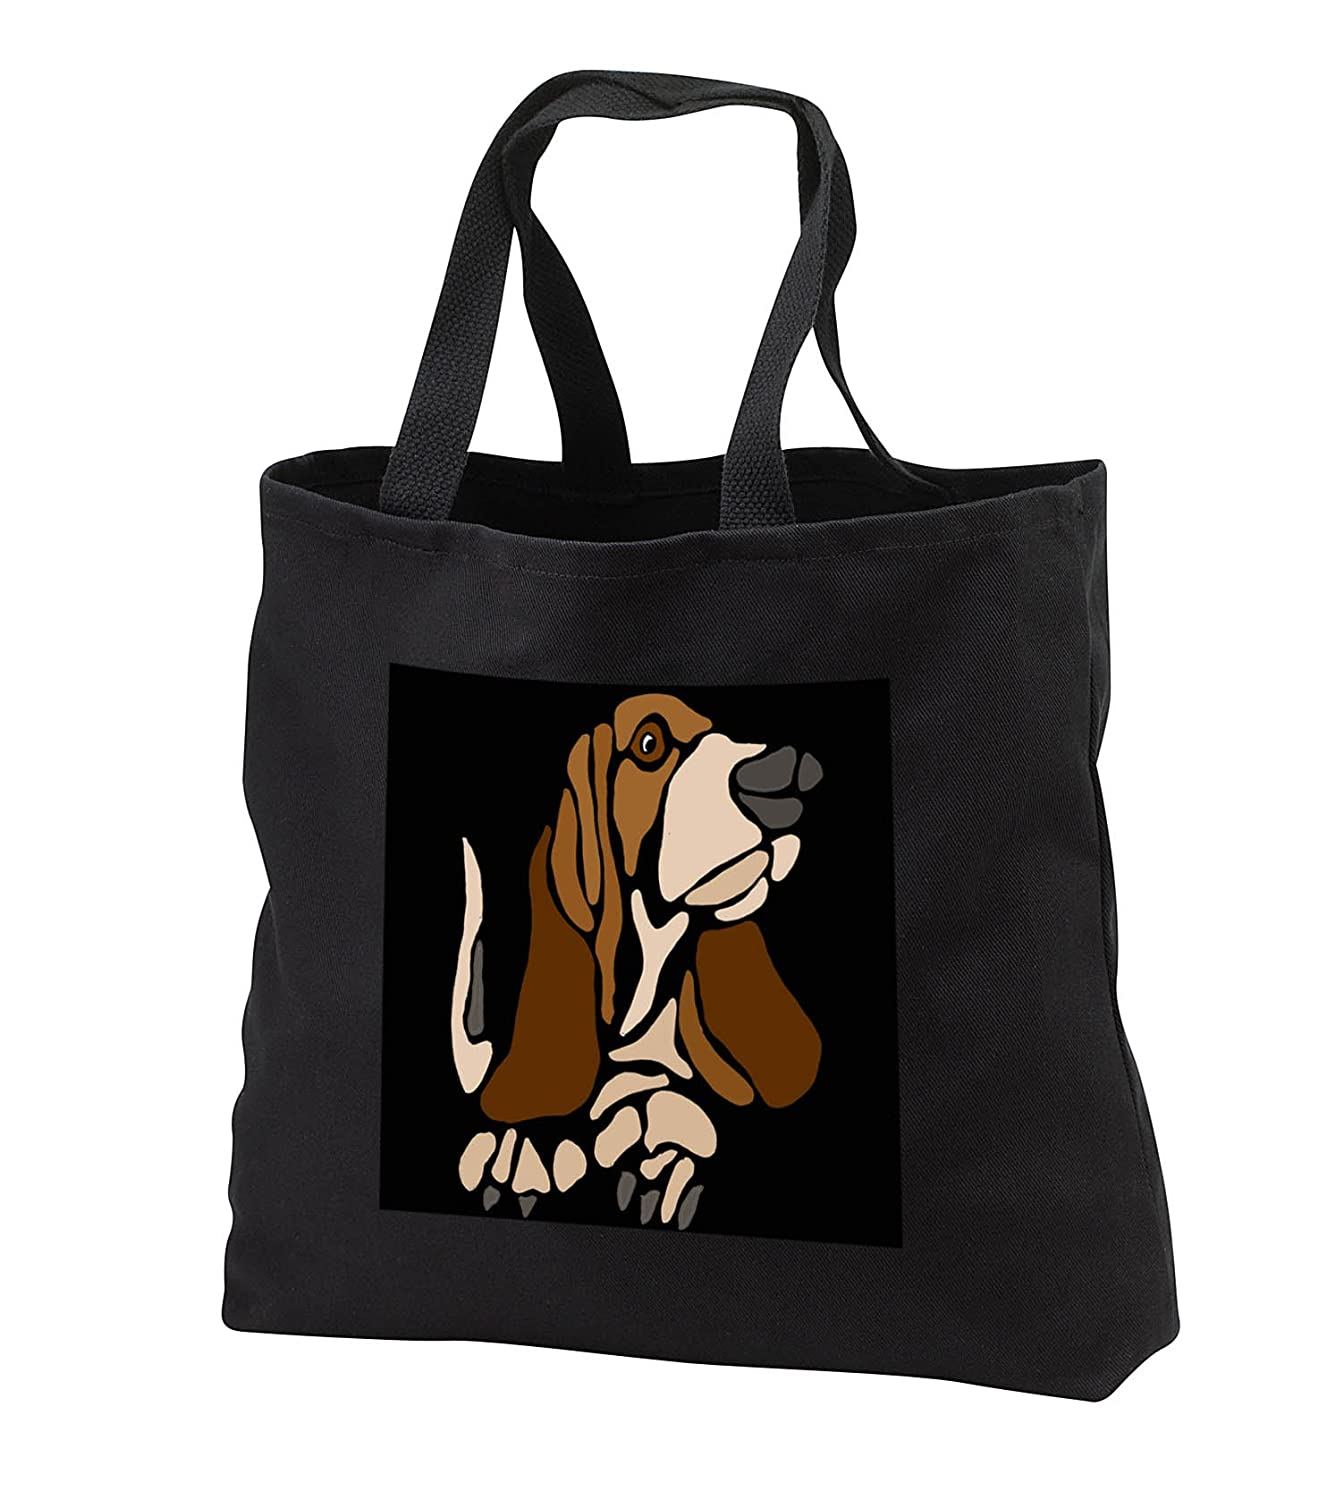 3drose All Smilesアートペット – Funny Artistic Basset Hound Puppy Dog抽象アート – Tote Bags B072L3M7TT  Black Tote Bag 14w x 14h x 3d